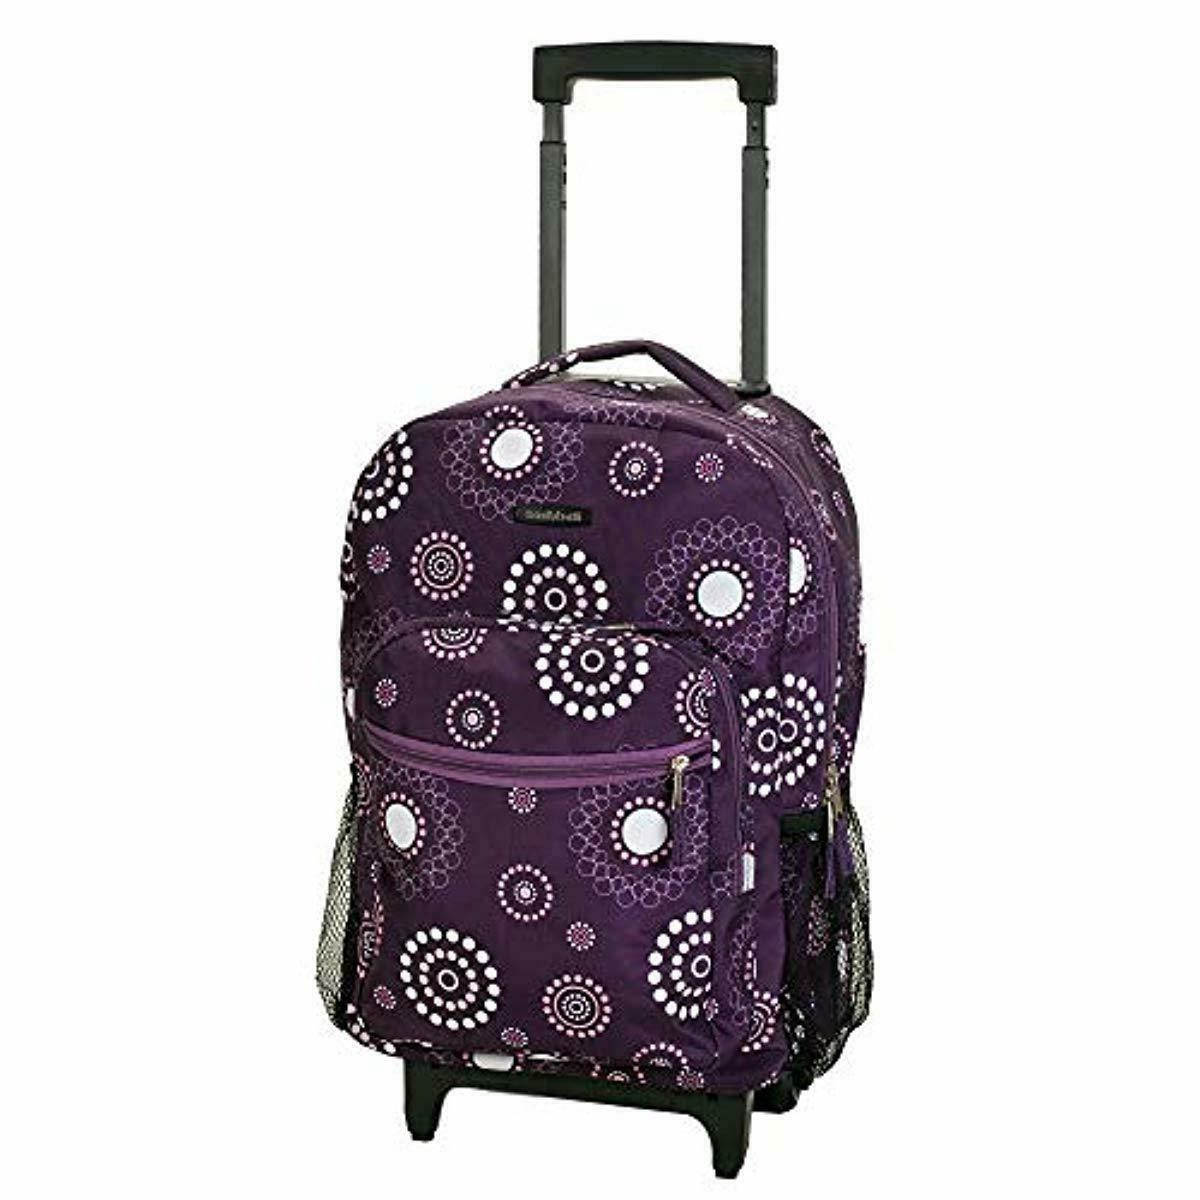 "Rockland 17"" Roadster Rolling Backpack"